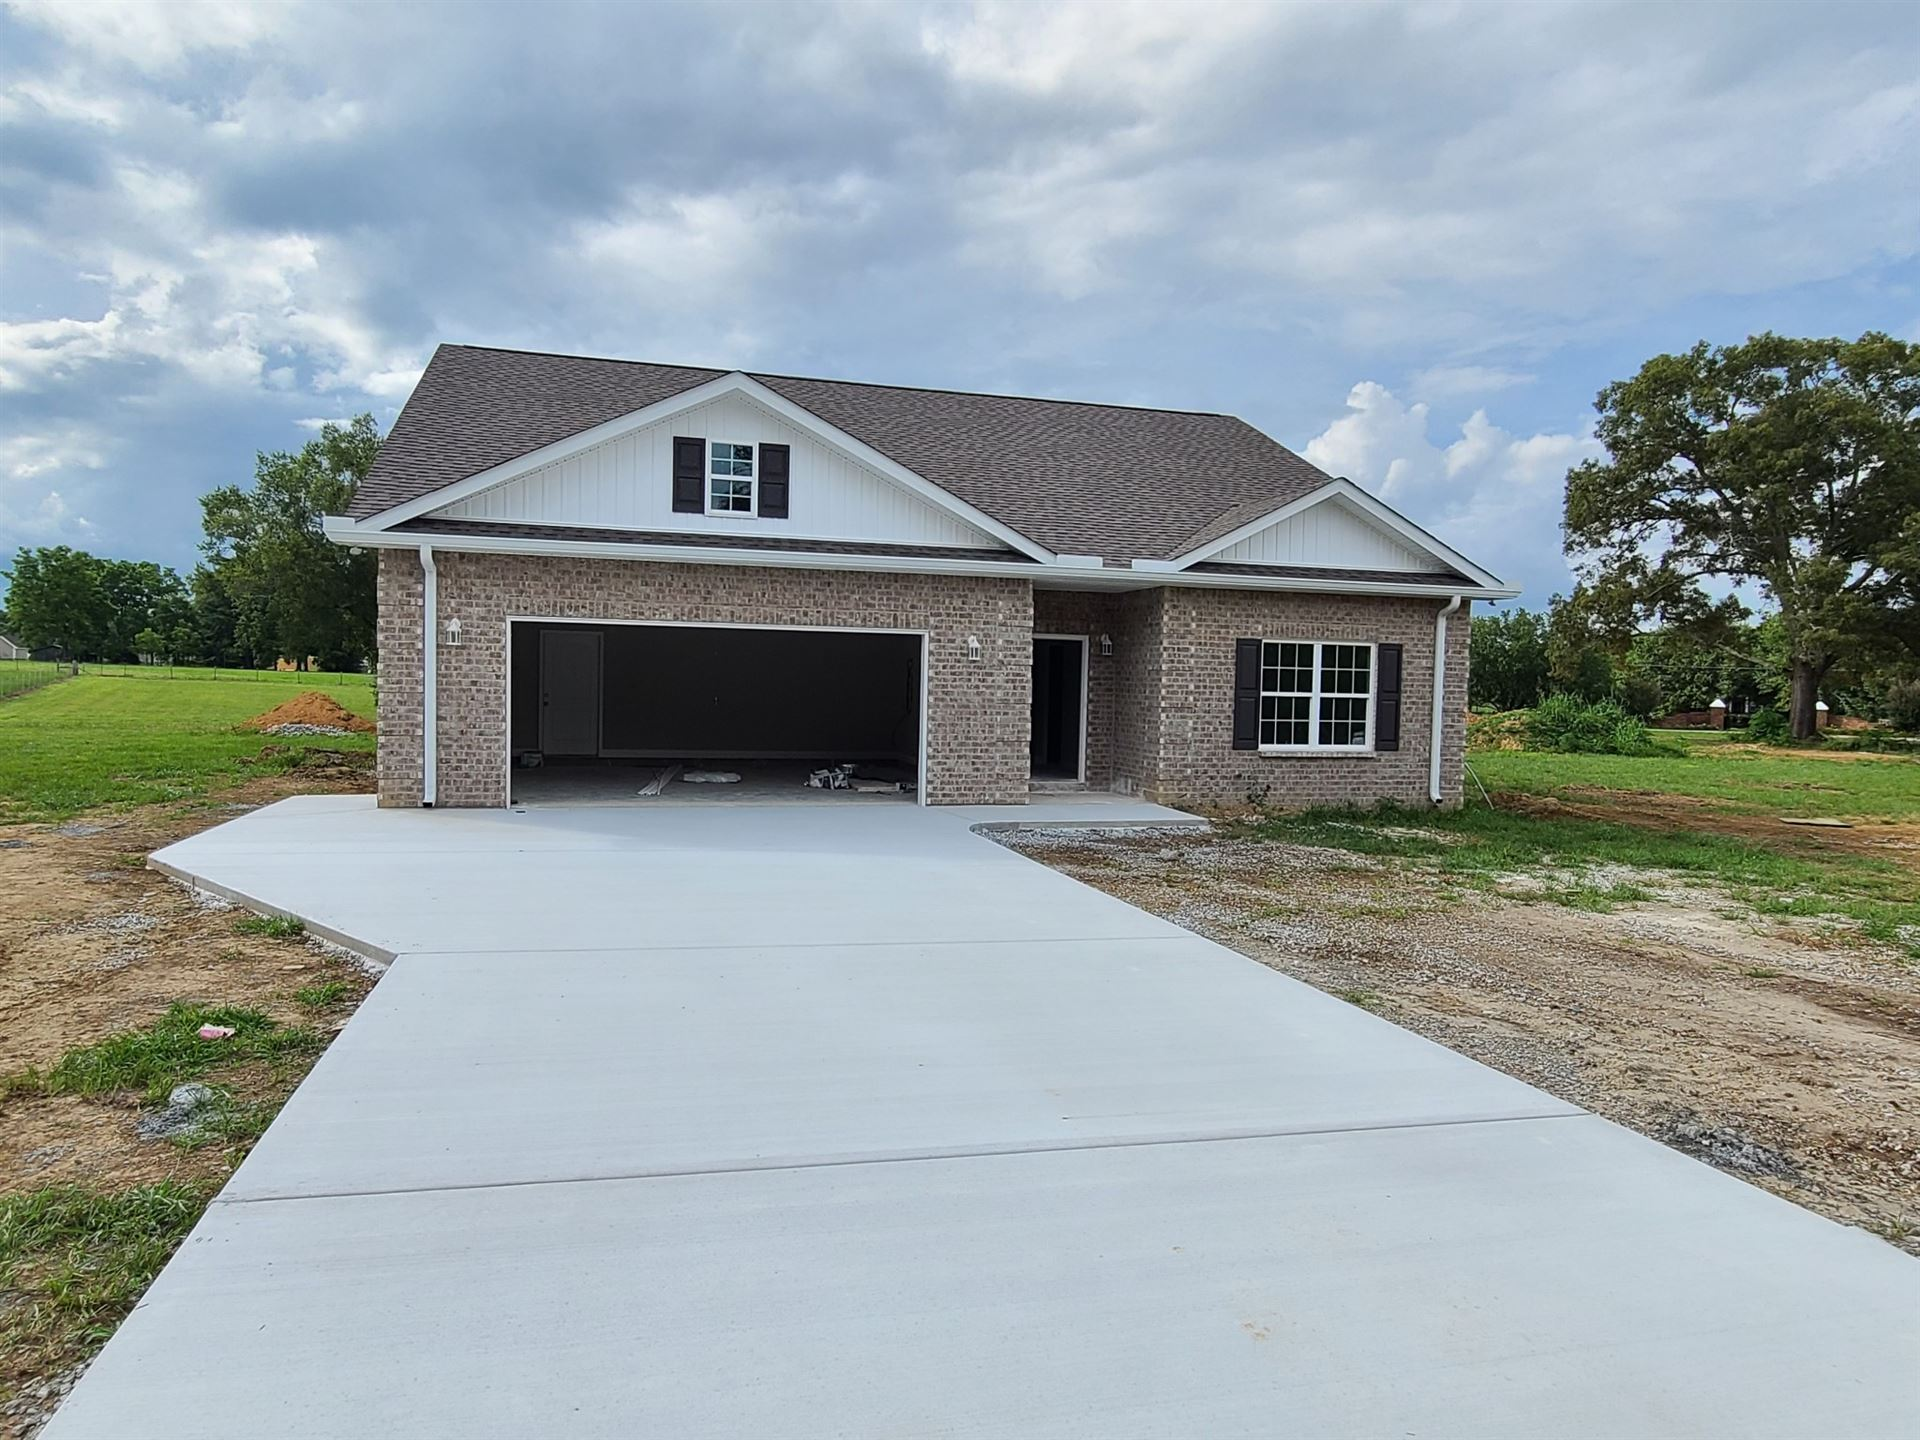 50 Hickory Dr, Manchester, TN 37355 - MLS#: 2255772